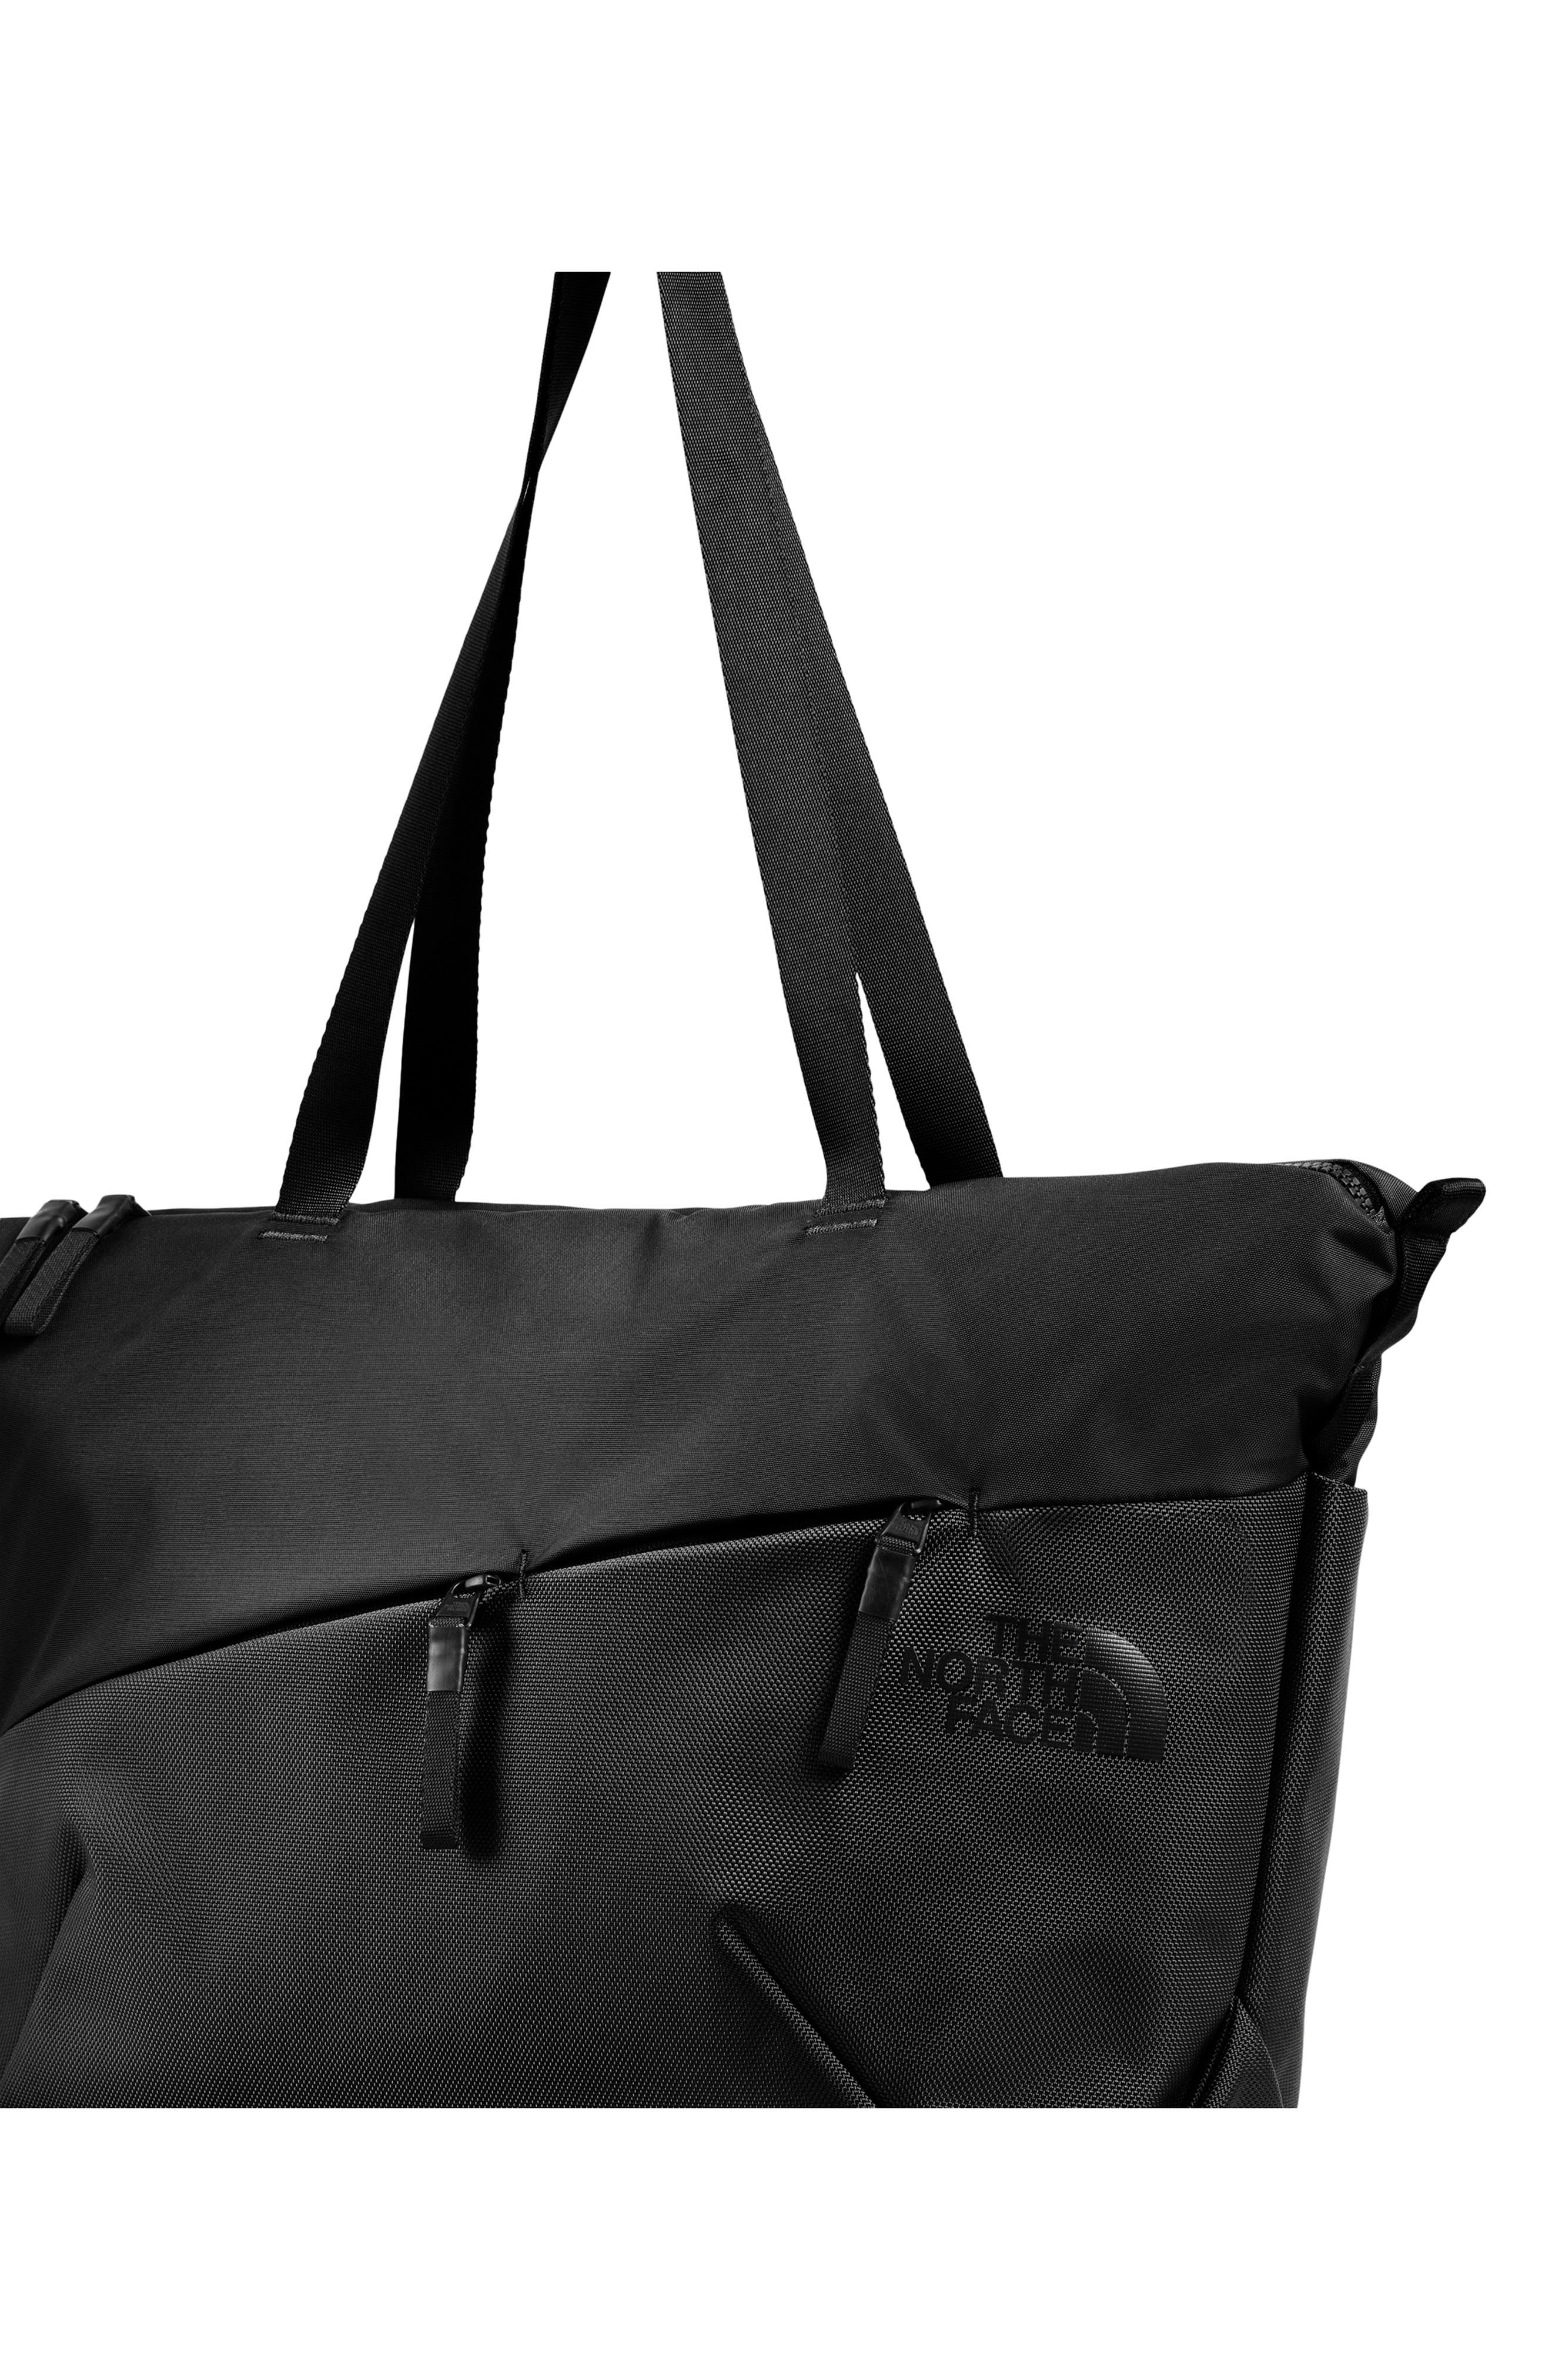 Electra Large Tote,                             Alternate thumbnail 3, color,                             TNF BLACK/ TNF BLACK